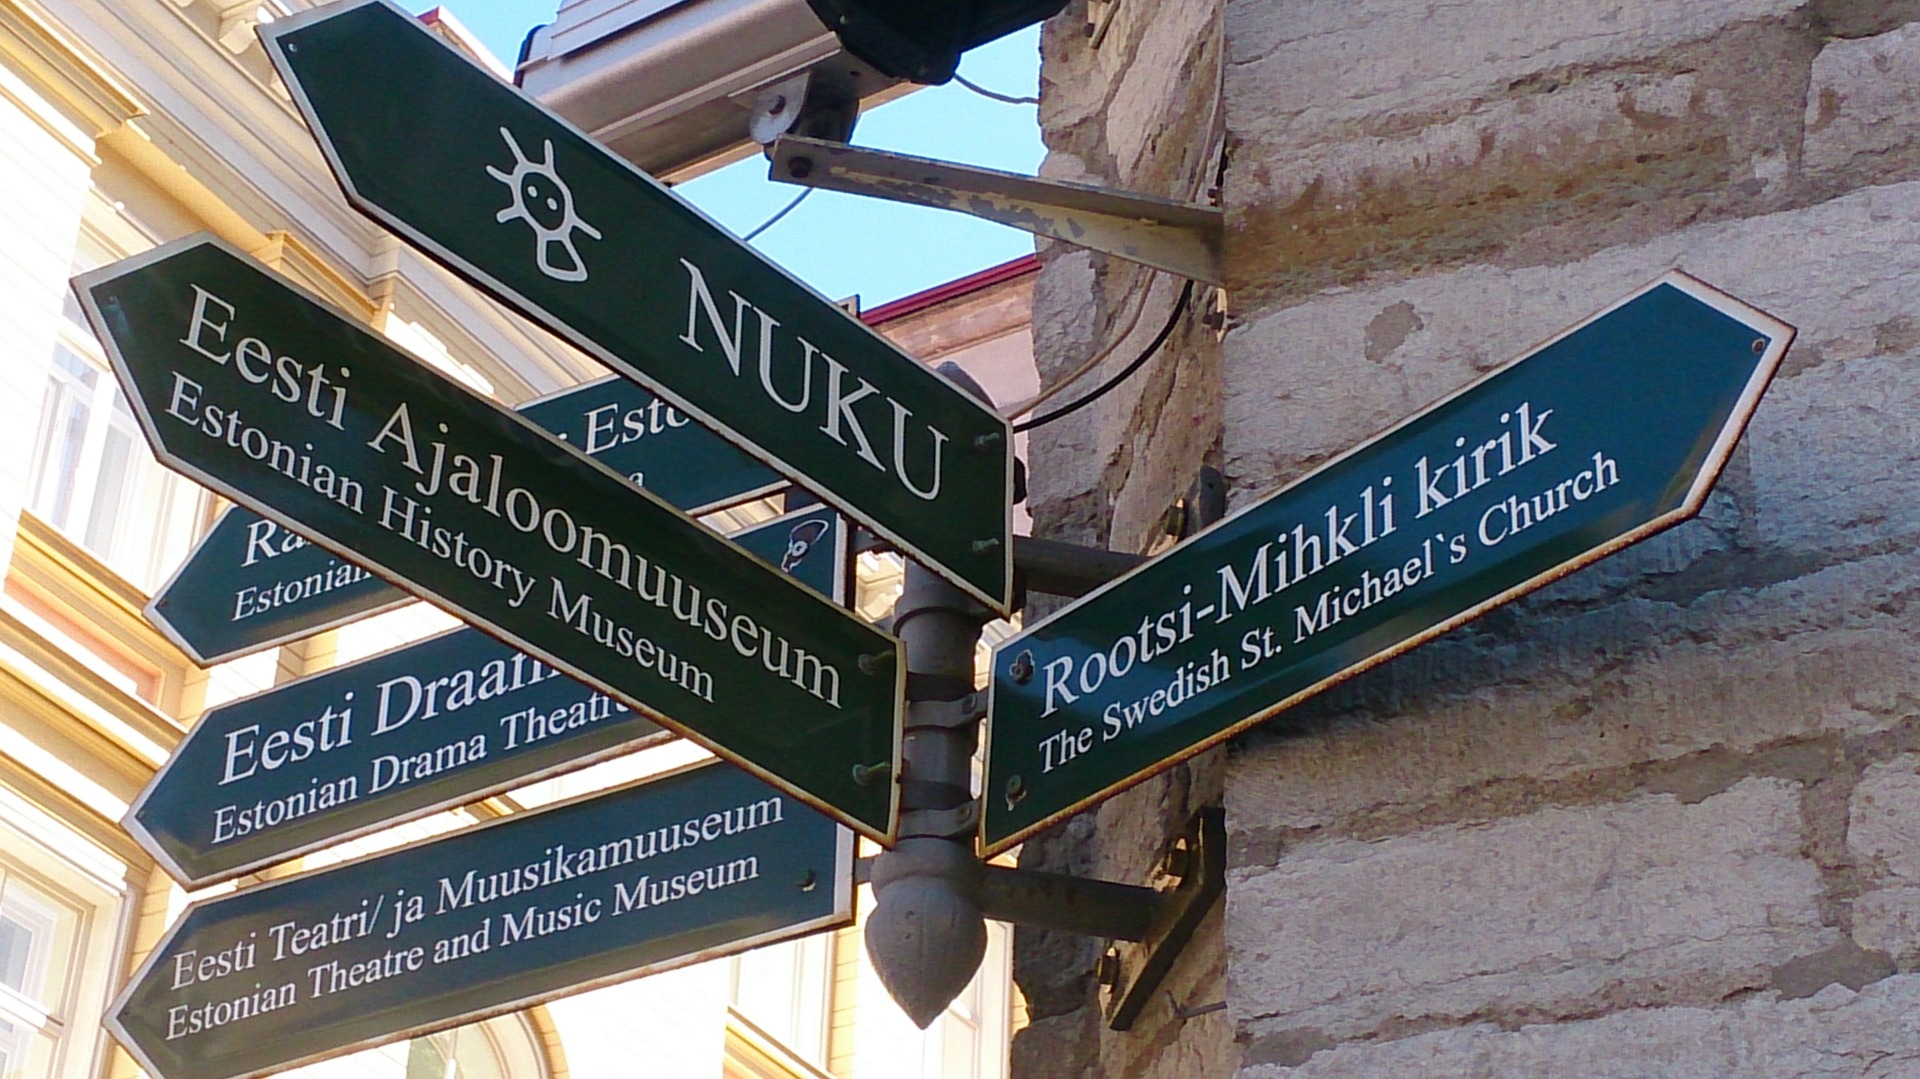 Estonia language signs